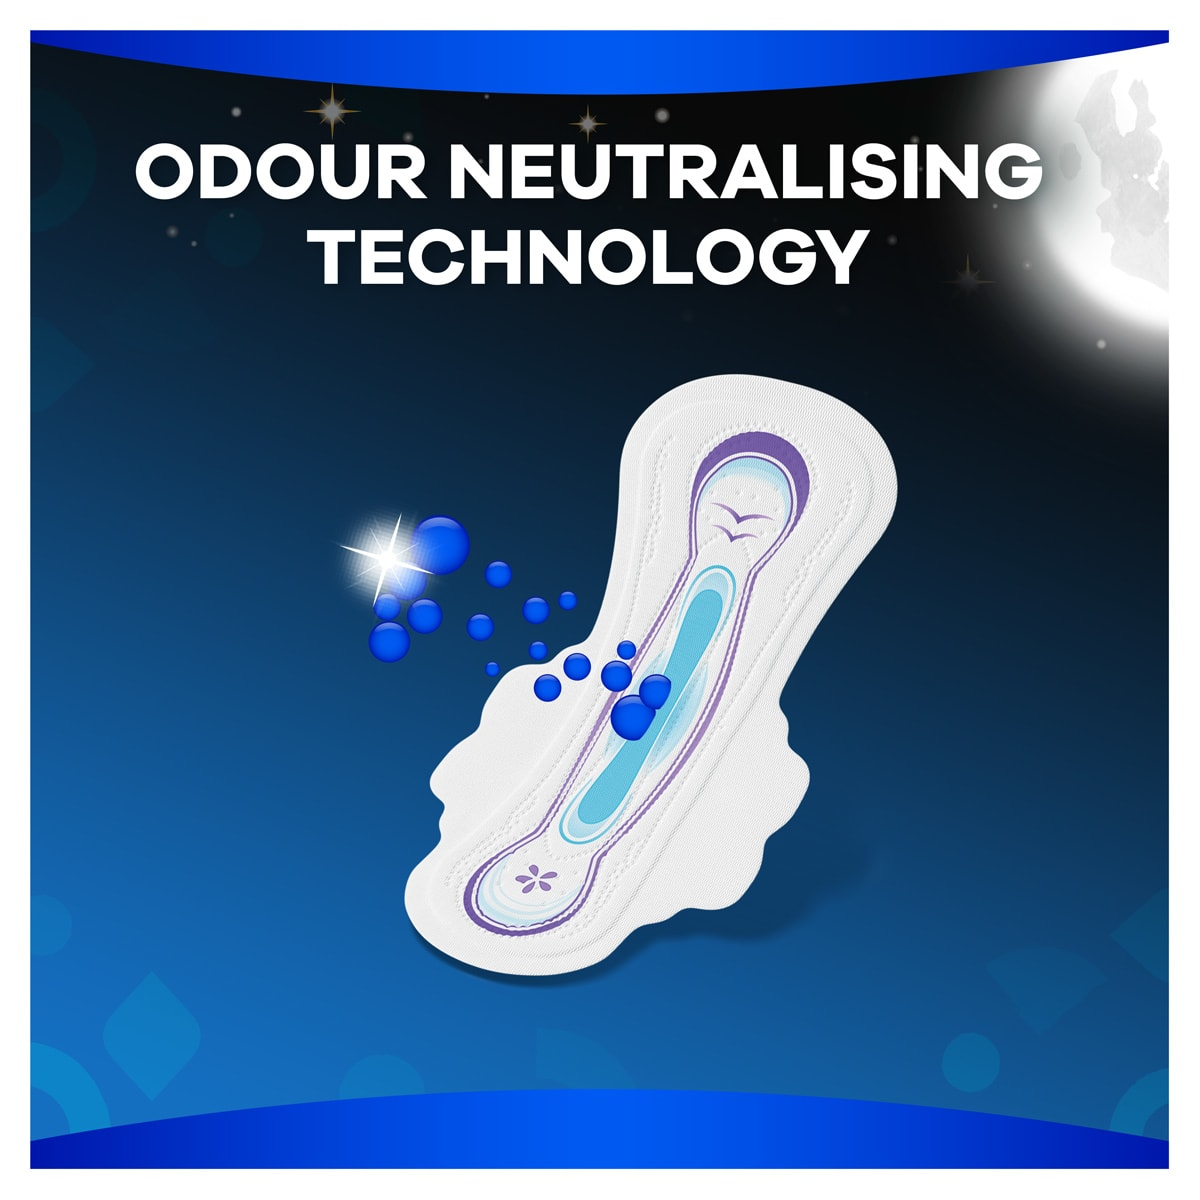 Odour neutralising technology